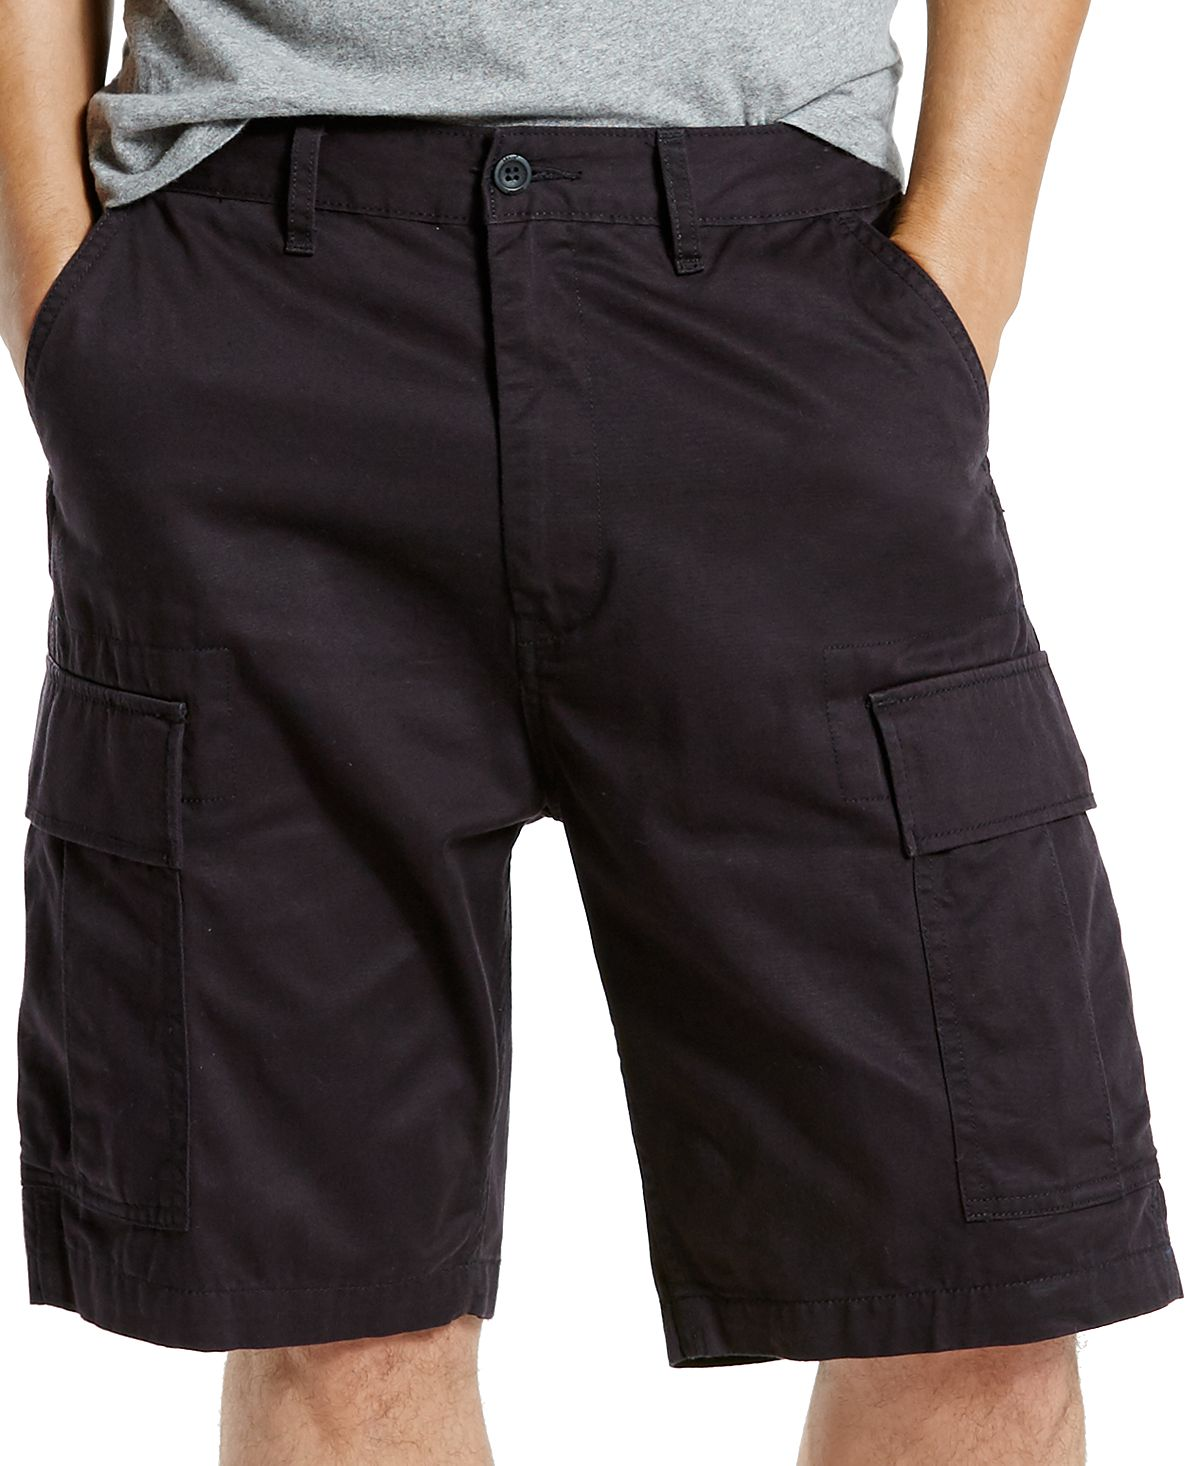 Levi's Carrier Loose-fit Cargo Shorts Black - Waterless